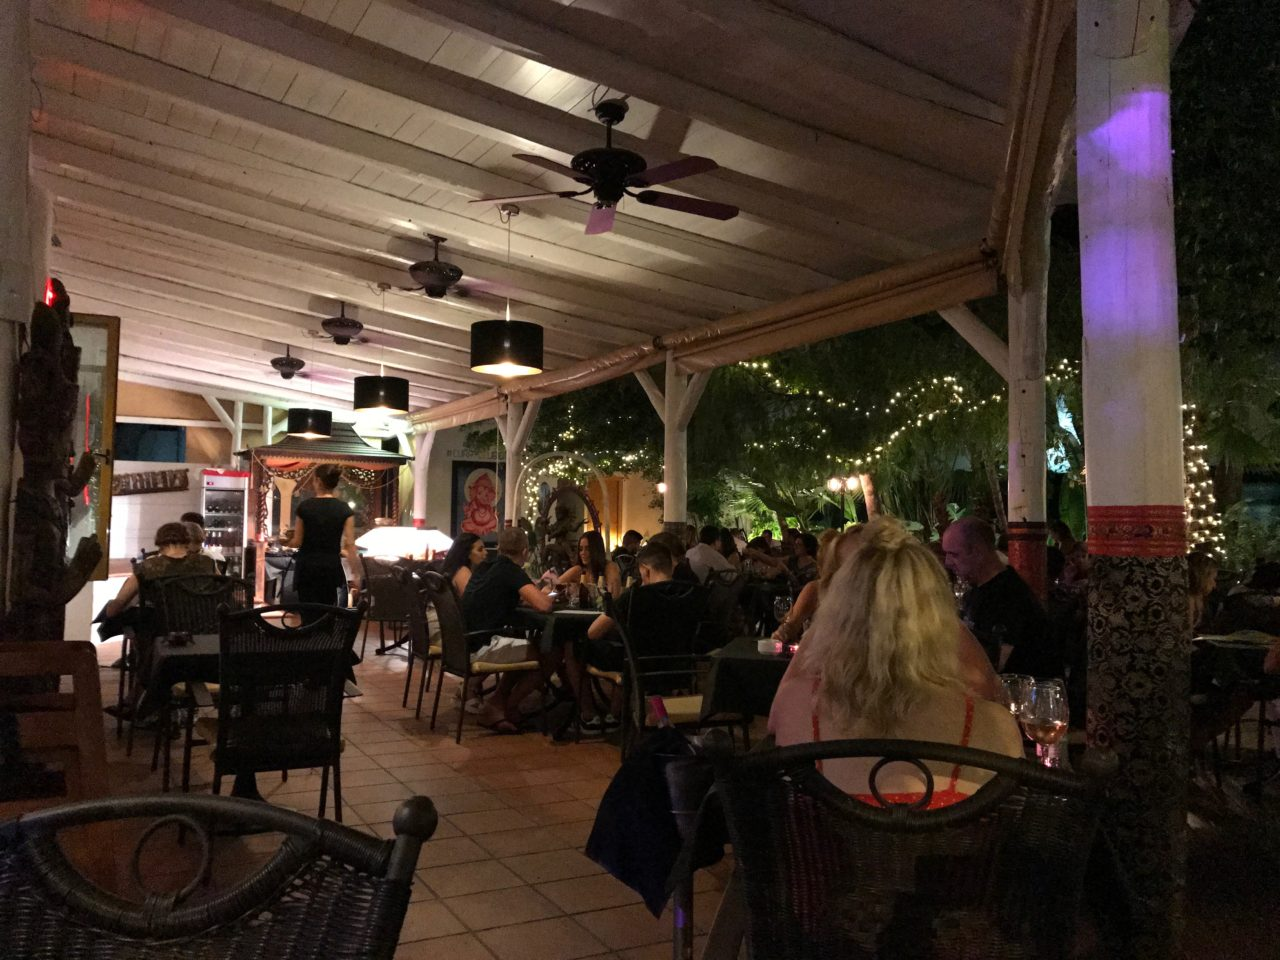 People Sitting In A Restaurant Eating With Fans And Lights